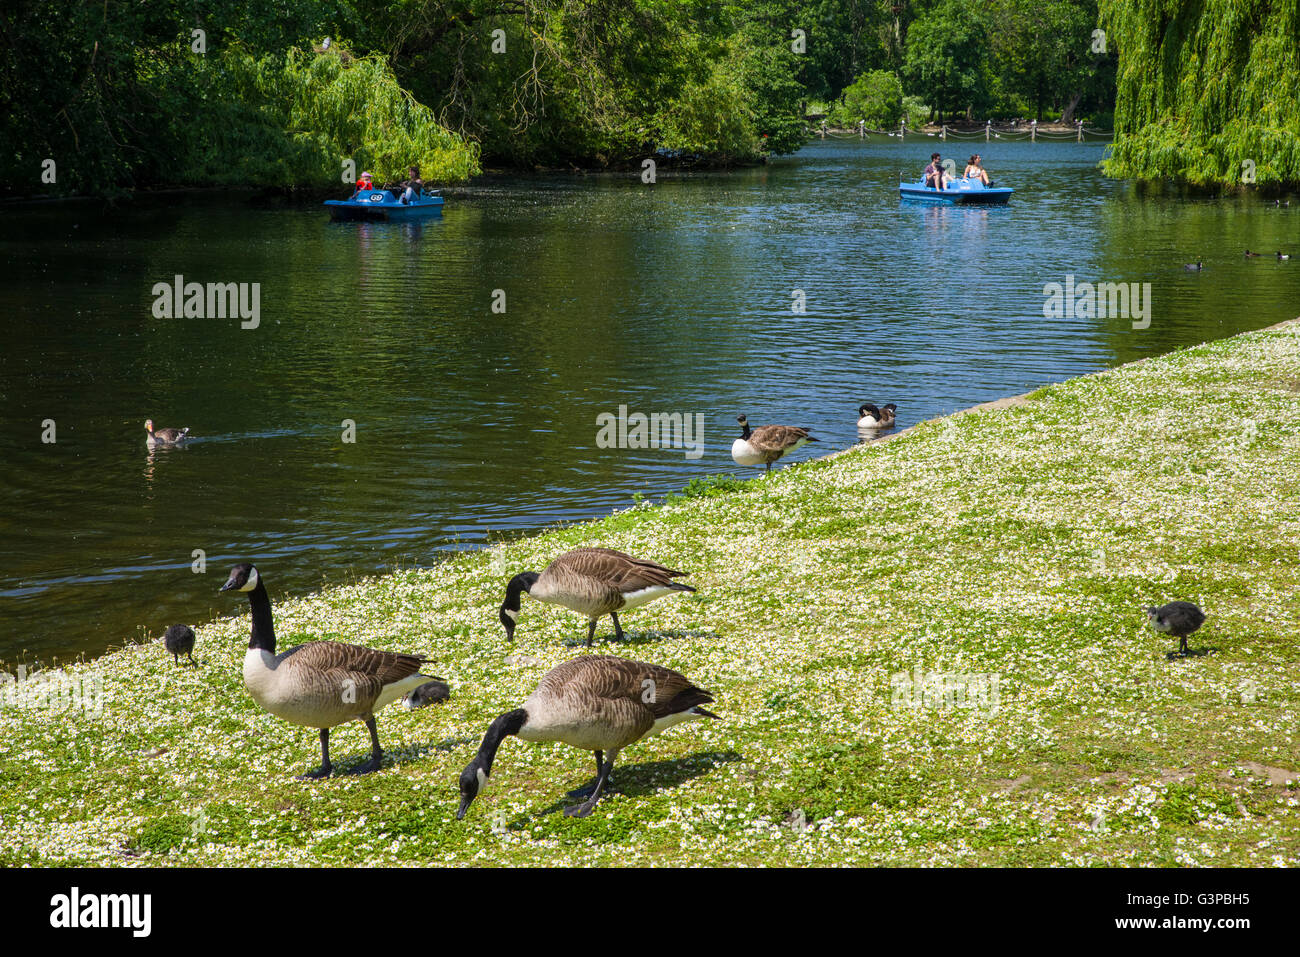 A view of the beautiful lake and wildlife in the historic Regents Park, London. - Stock Image